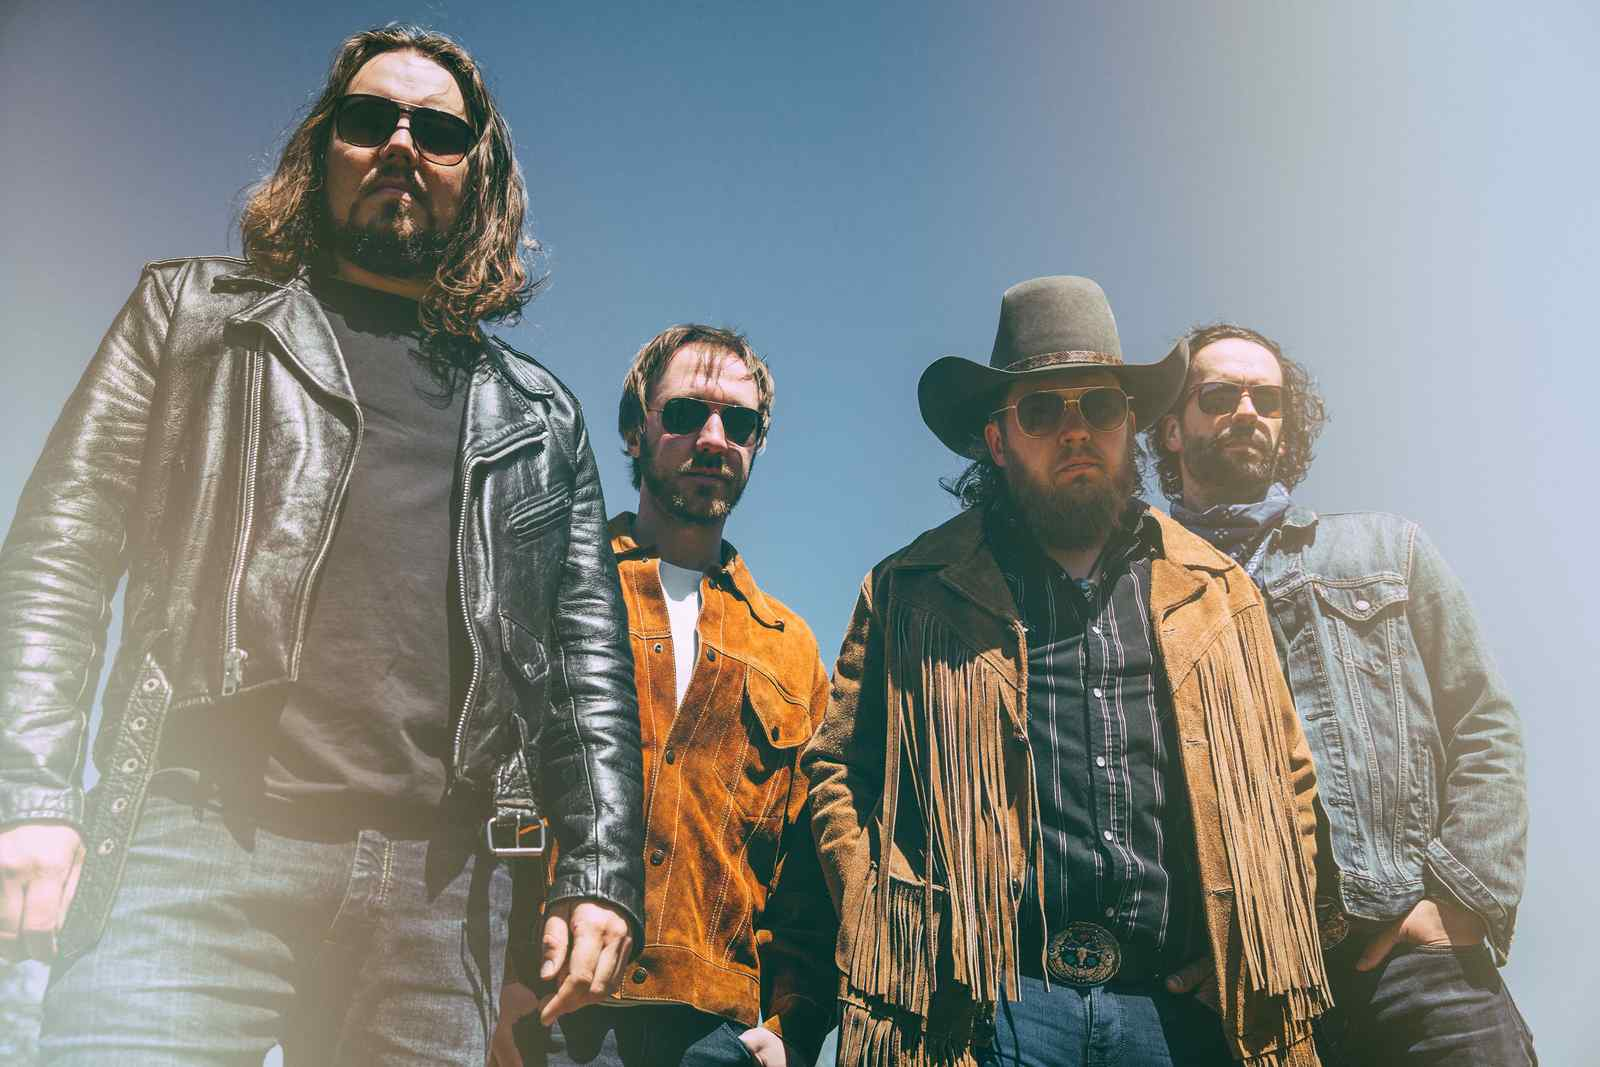 Rock band The Steel Woods to perform in Flora